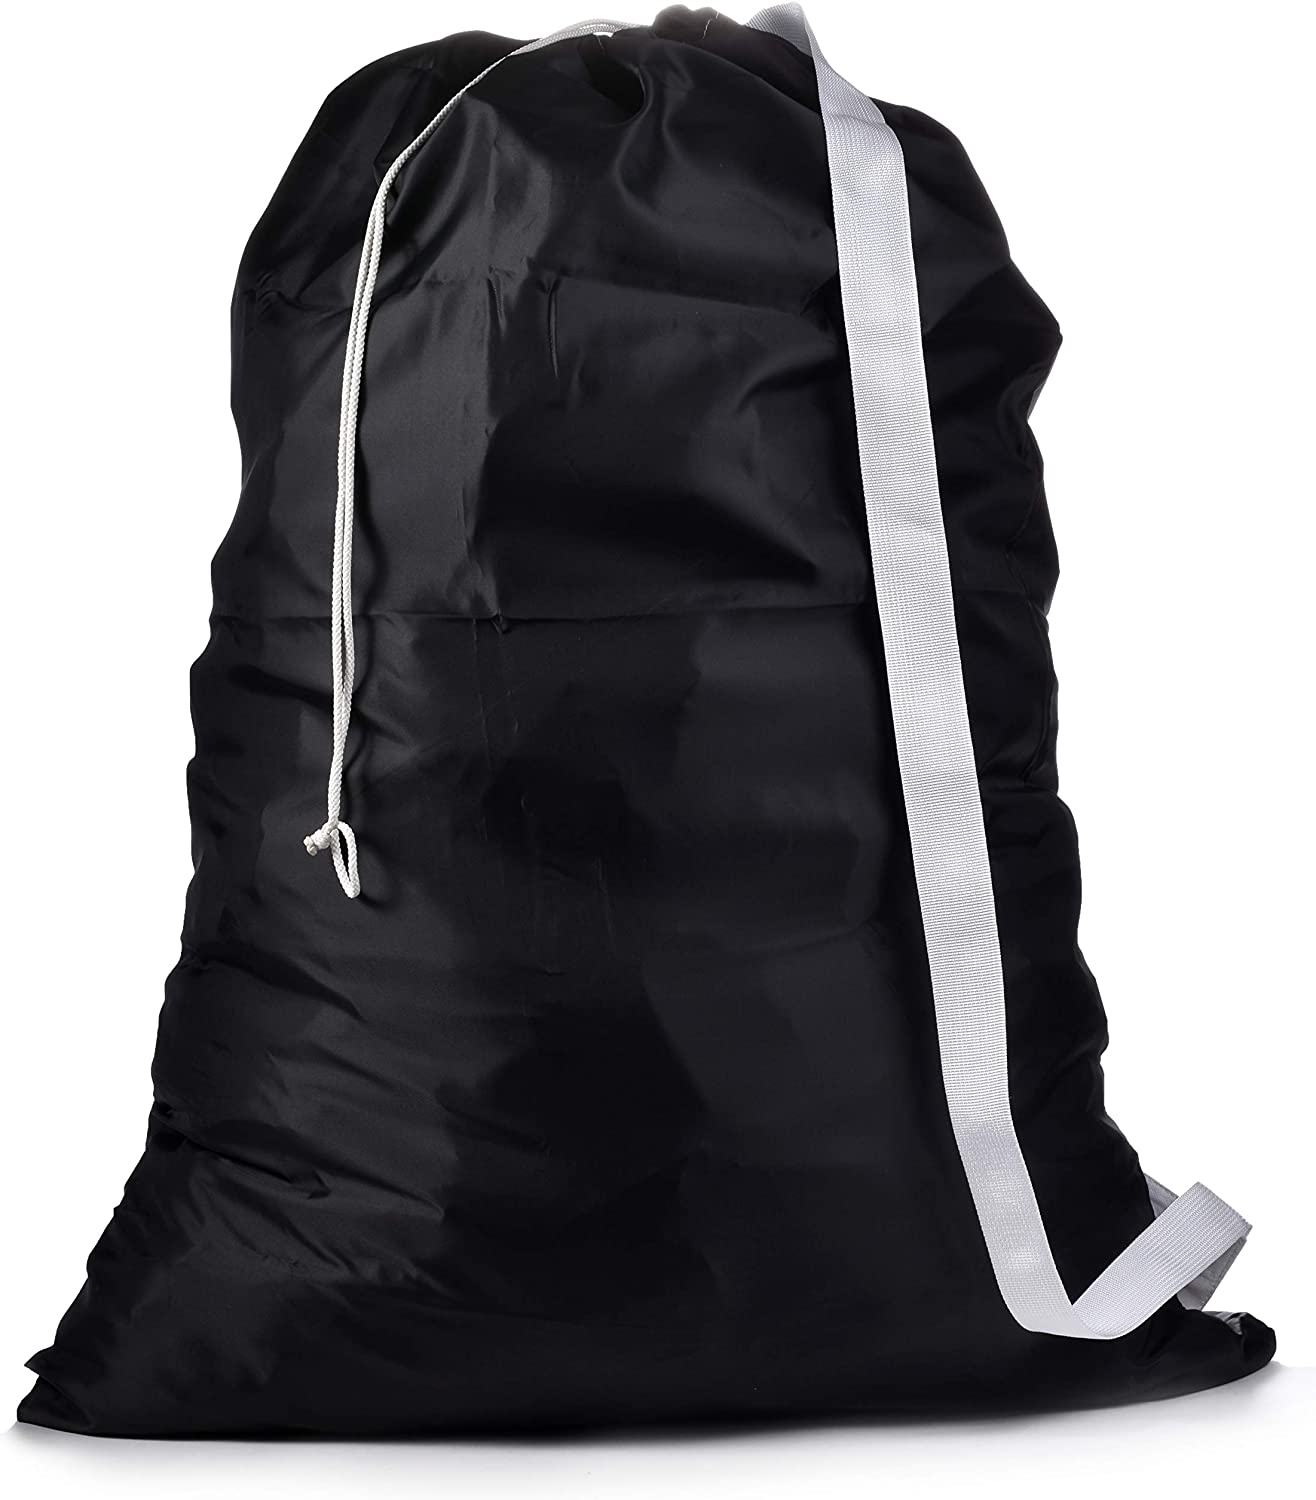 "Shoulder Strap Laundry Bag - Drawstring Locking Closure, Durable Nylon Material, Large Capacity, Heavy Duty Stitching, Hands Free Carrying, Perfect for Laundromat or College Dorm. (Black | 30"" x 40"")"